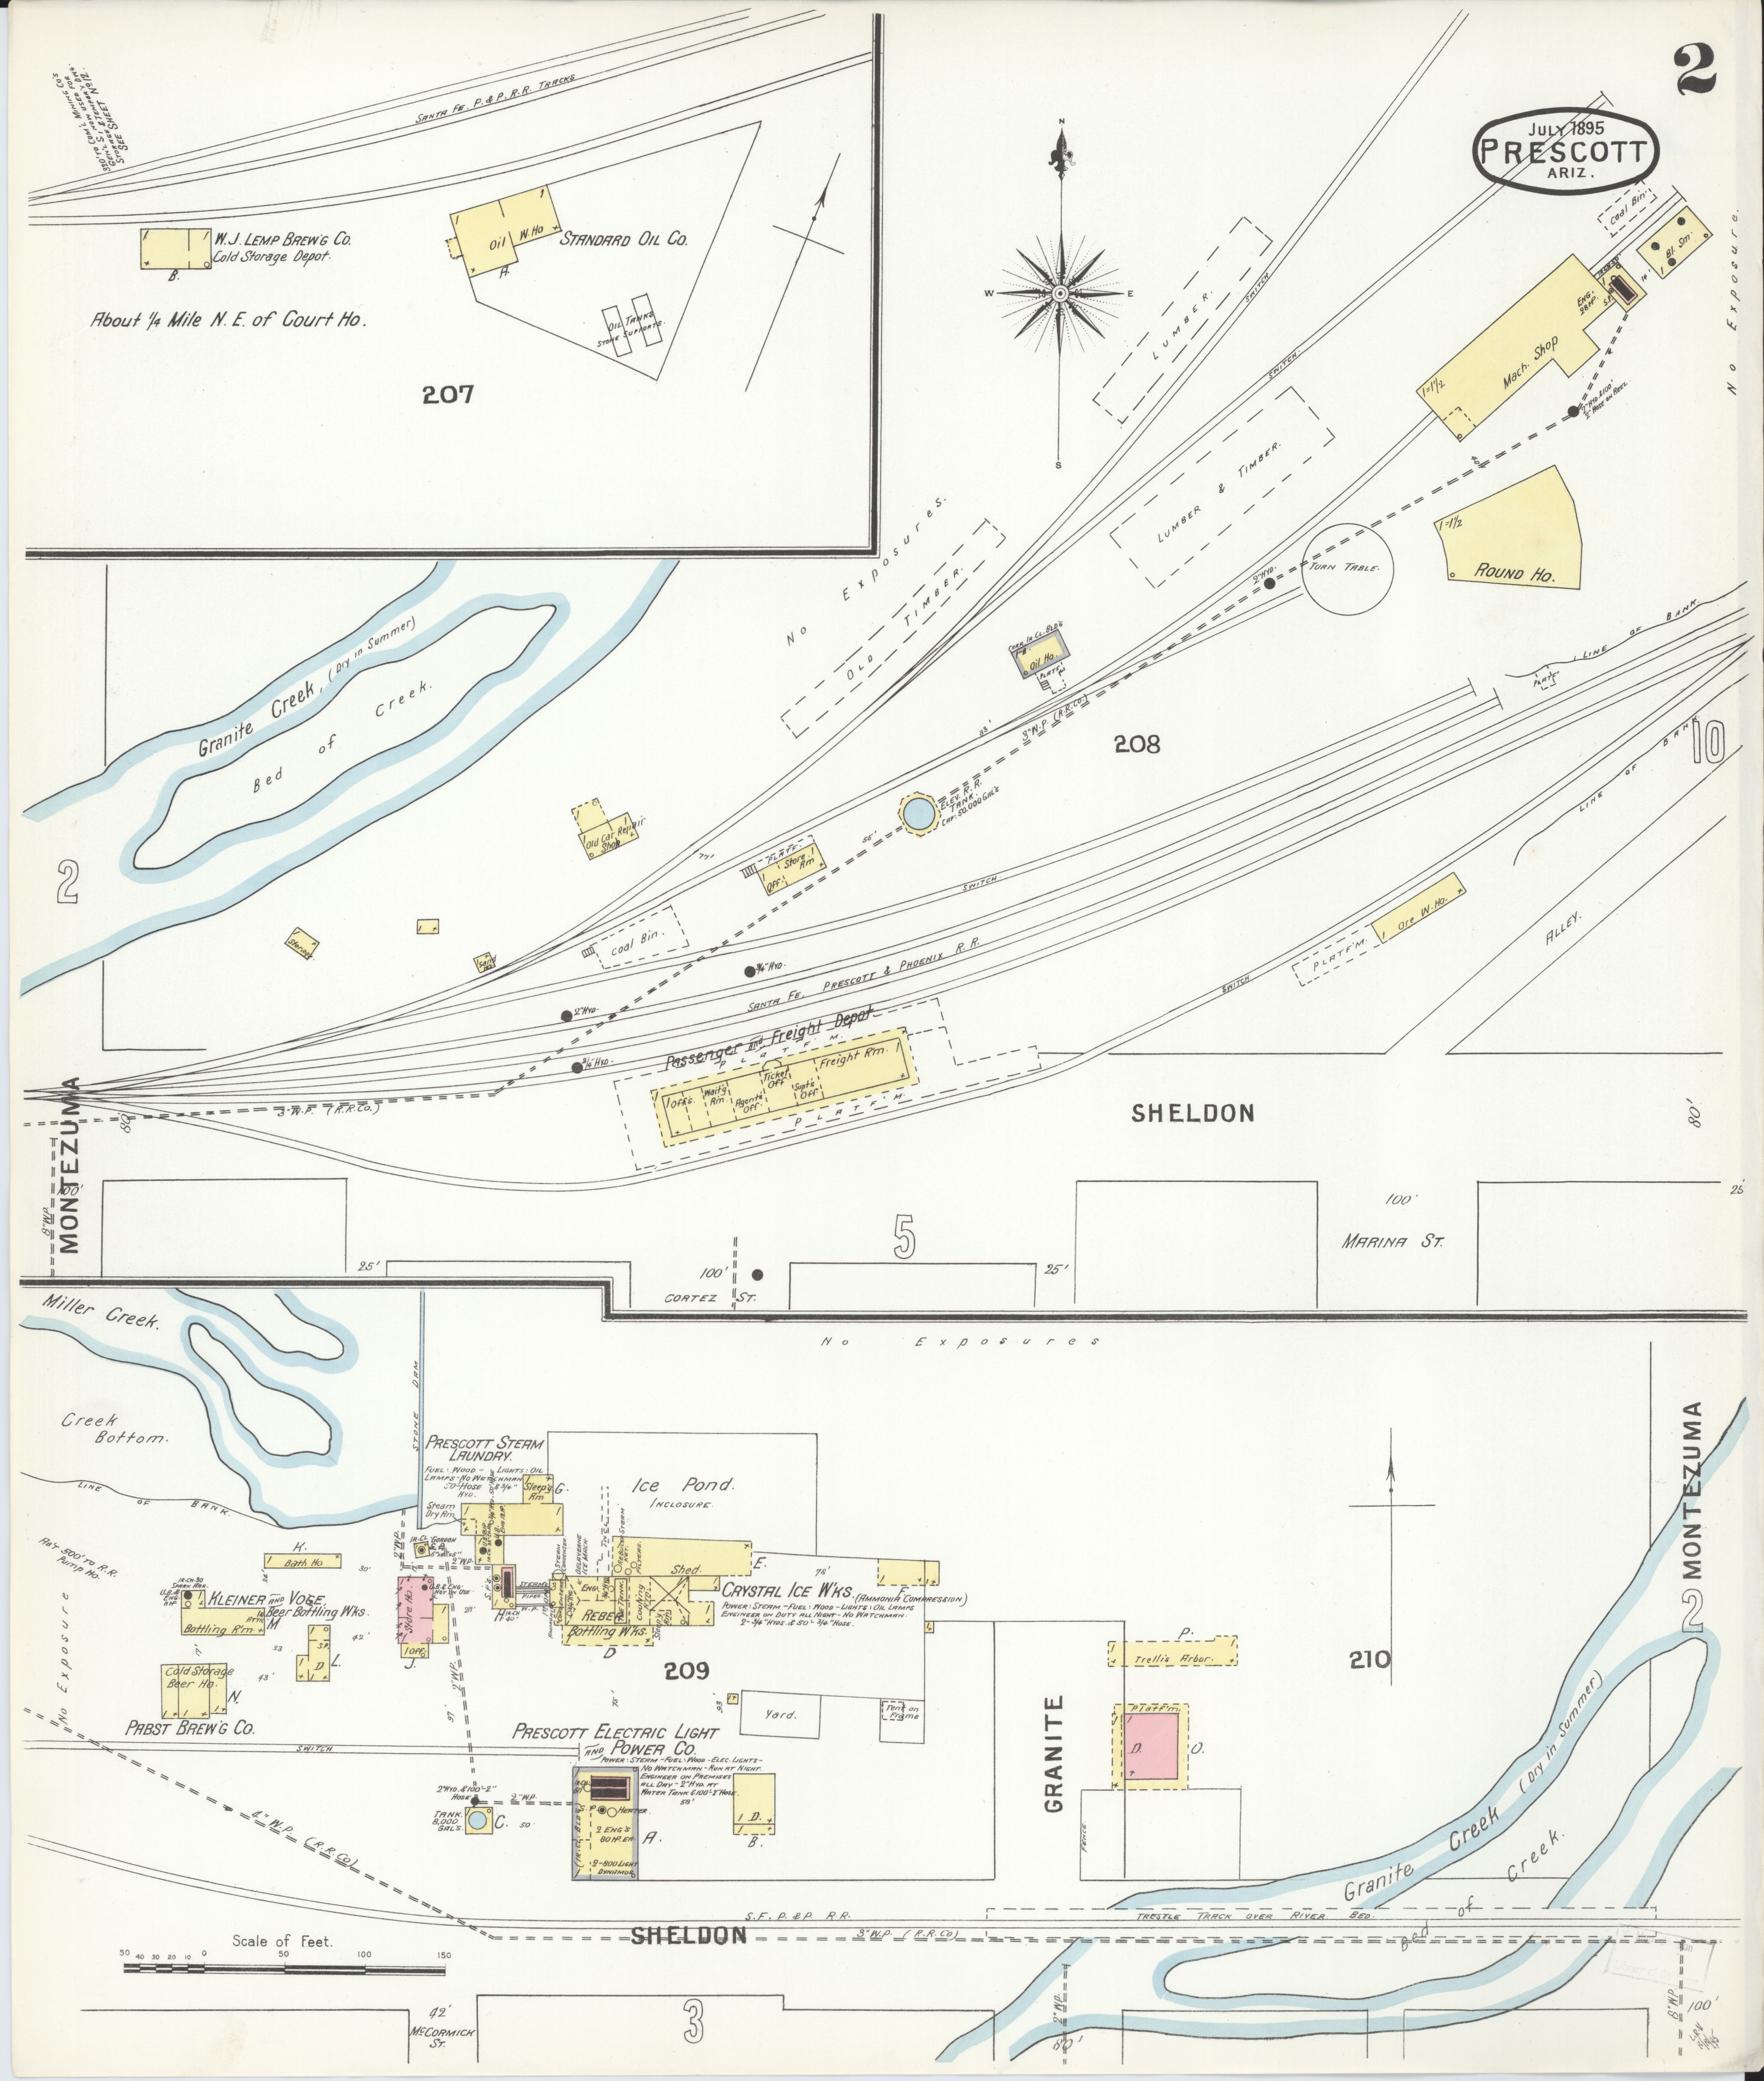 Map Of Arizona Prescott.File Sanborn Fire Insurance Map From Prescott Yavapai County